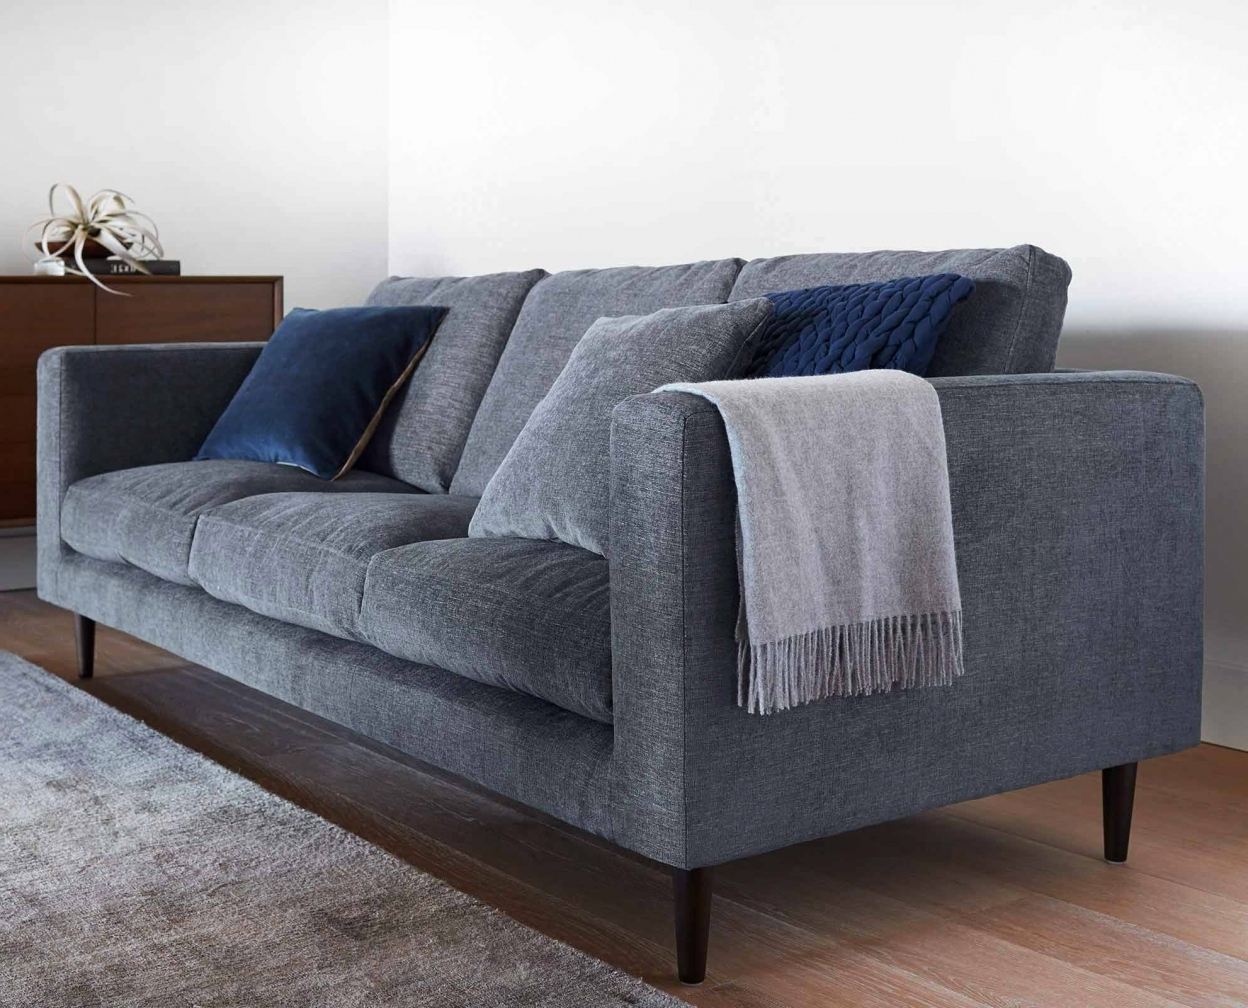 Dania Sectional Sofas In Trendy Modern Sectional Sofas Cheap Capital Dania The Hagen Sofa Offers (View 3 of 15)